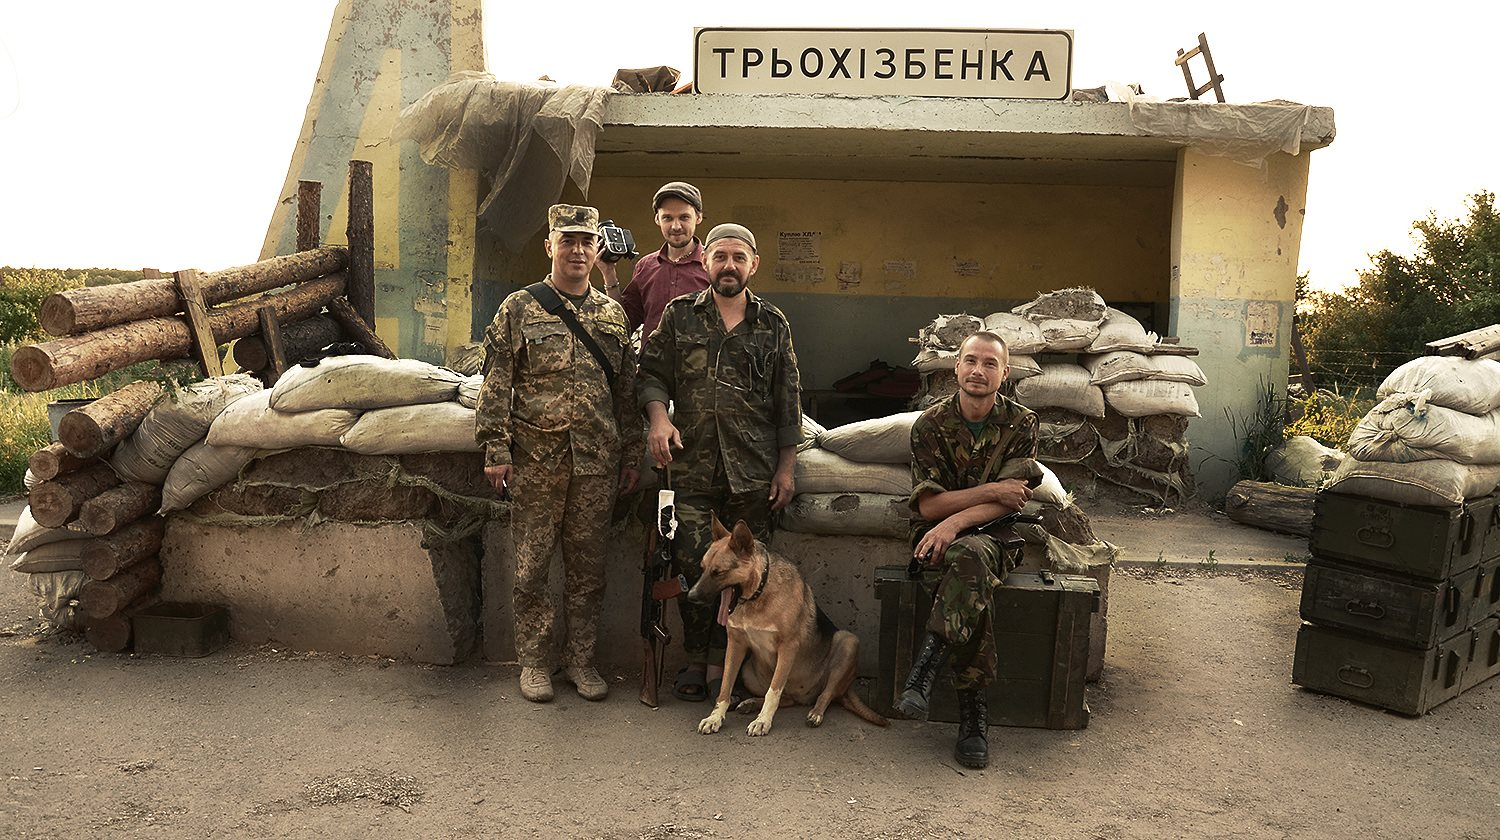 The first meditation about Donbass in Ukraine